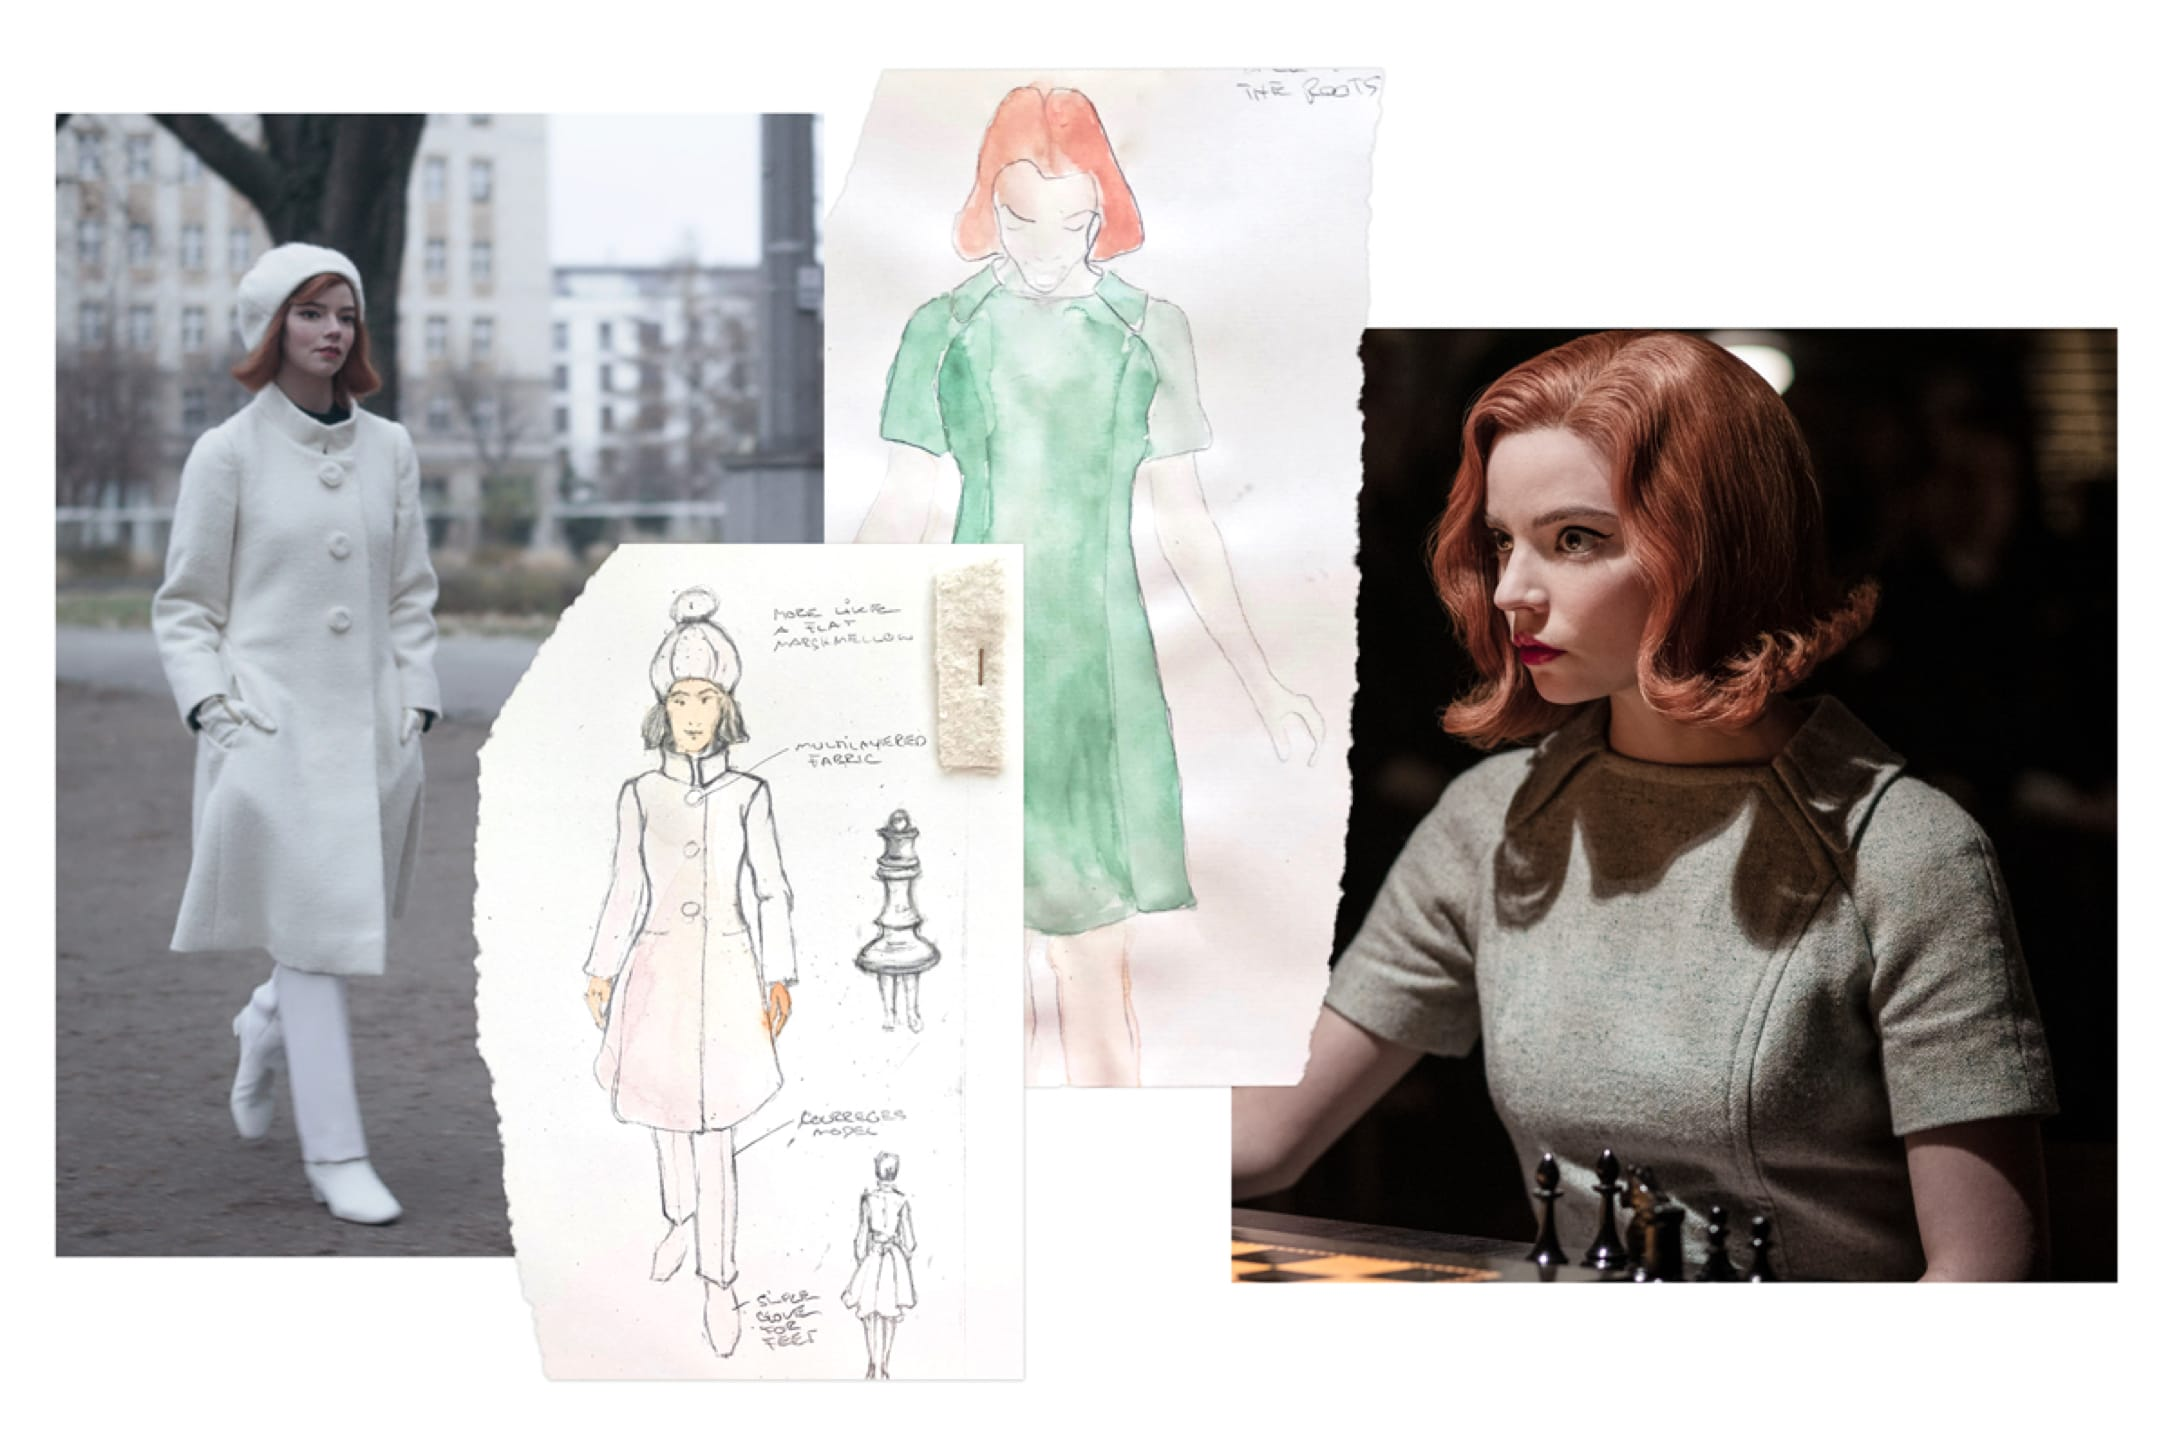 Costume sketches are interspersed with corresponding stills from The Queen's Gambit.